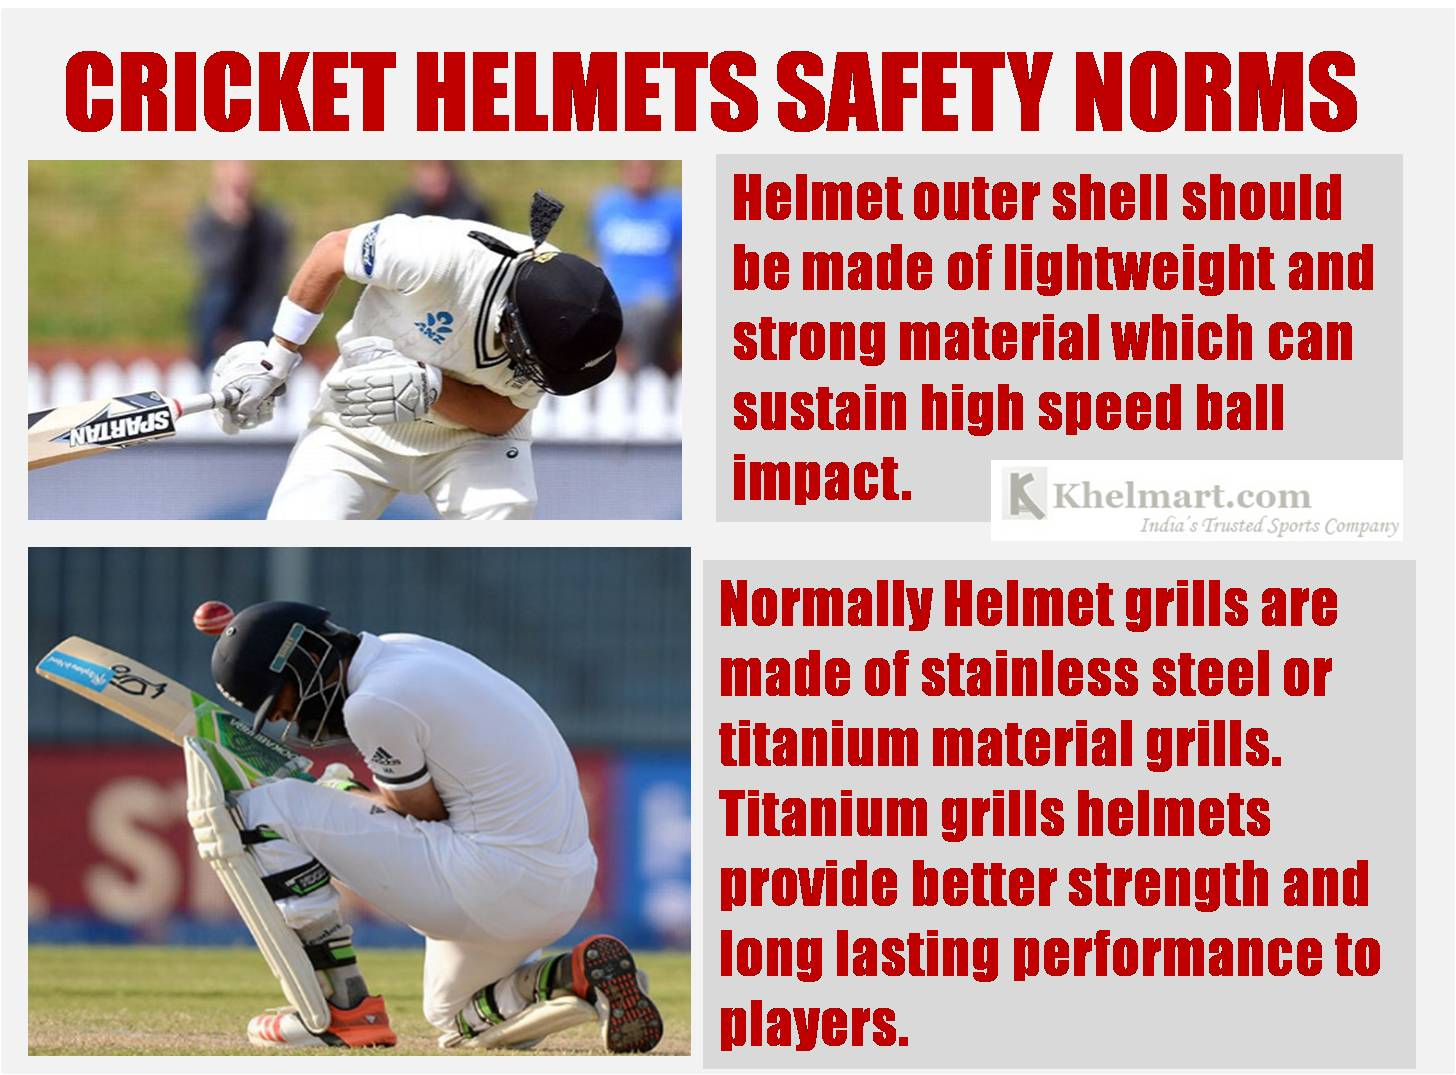 CRICKET_HELMETS_SAFETY_NORMS